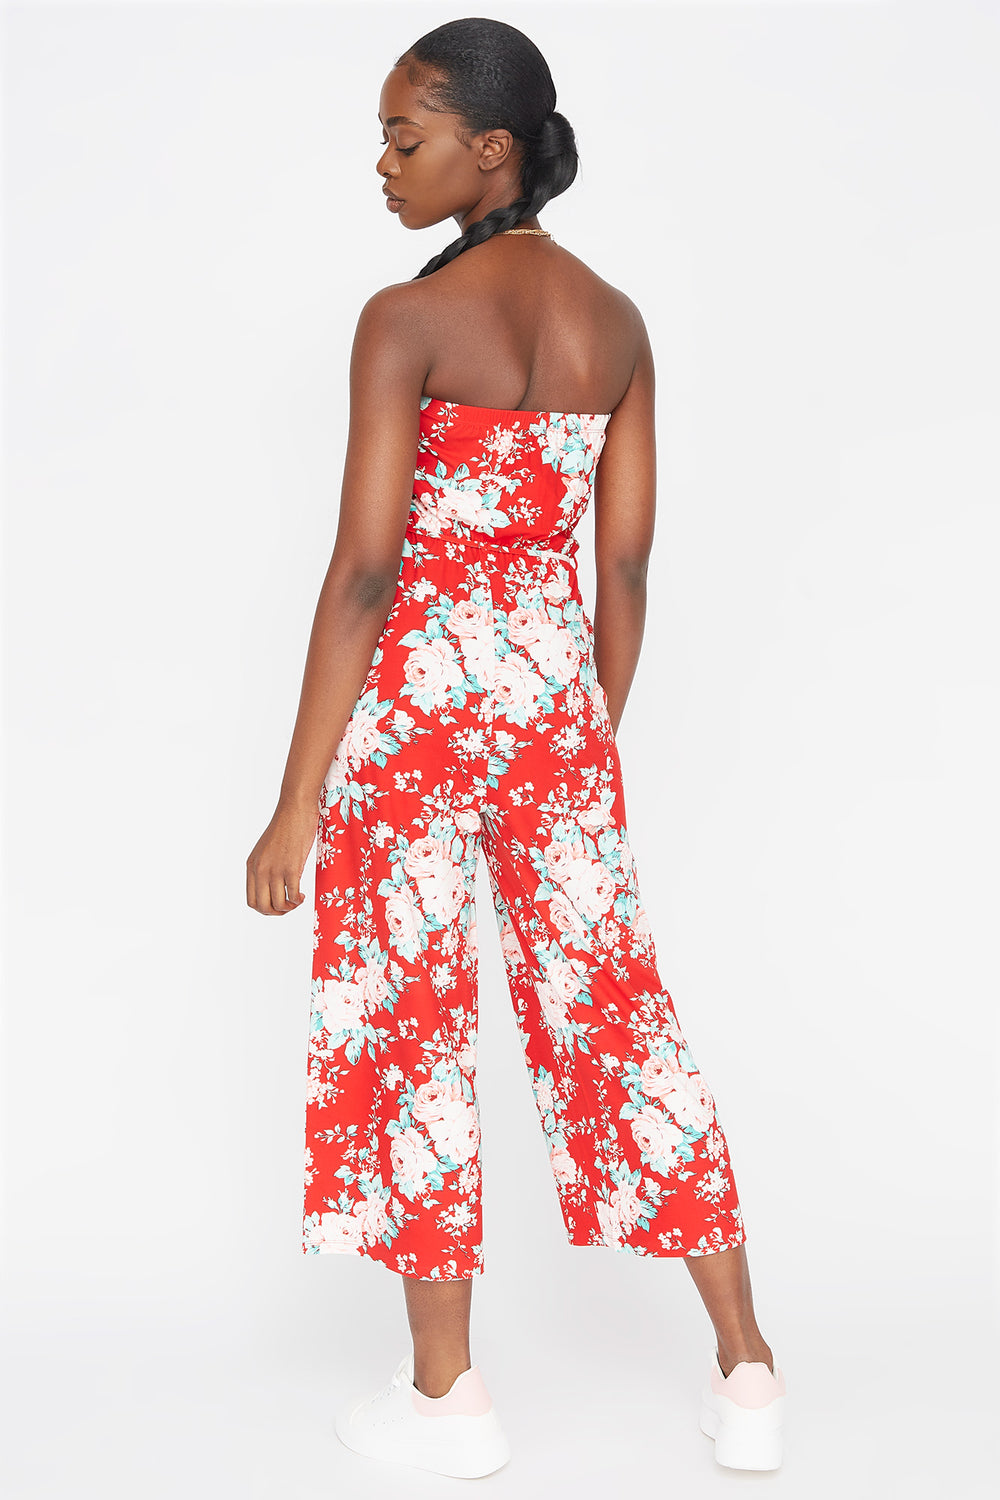 Soft Printed Strapless Self-Tie Belted Culotte Jumpsuit Cherry